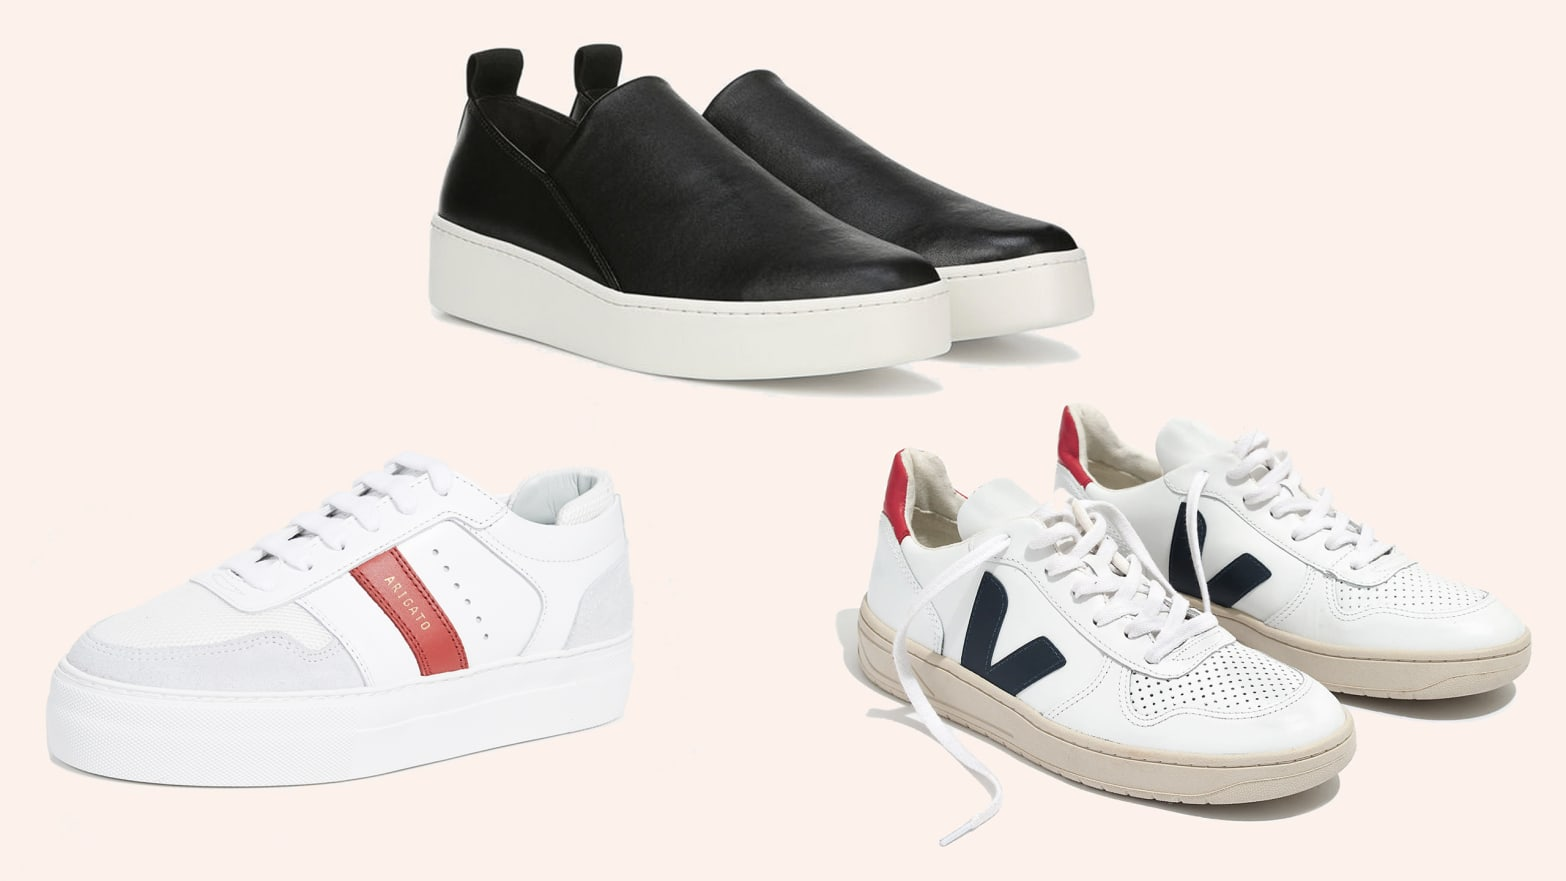 The Nicest Women's Sneakers for Everyday Wear